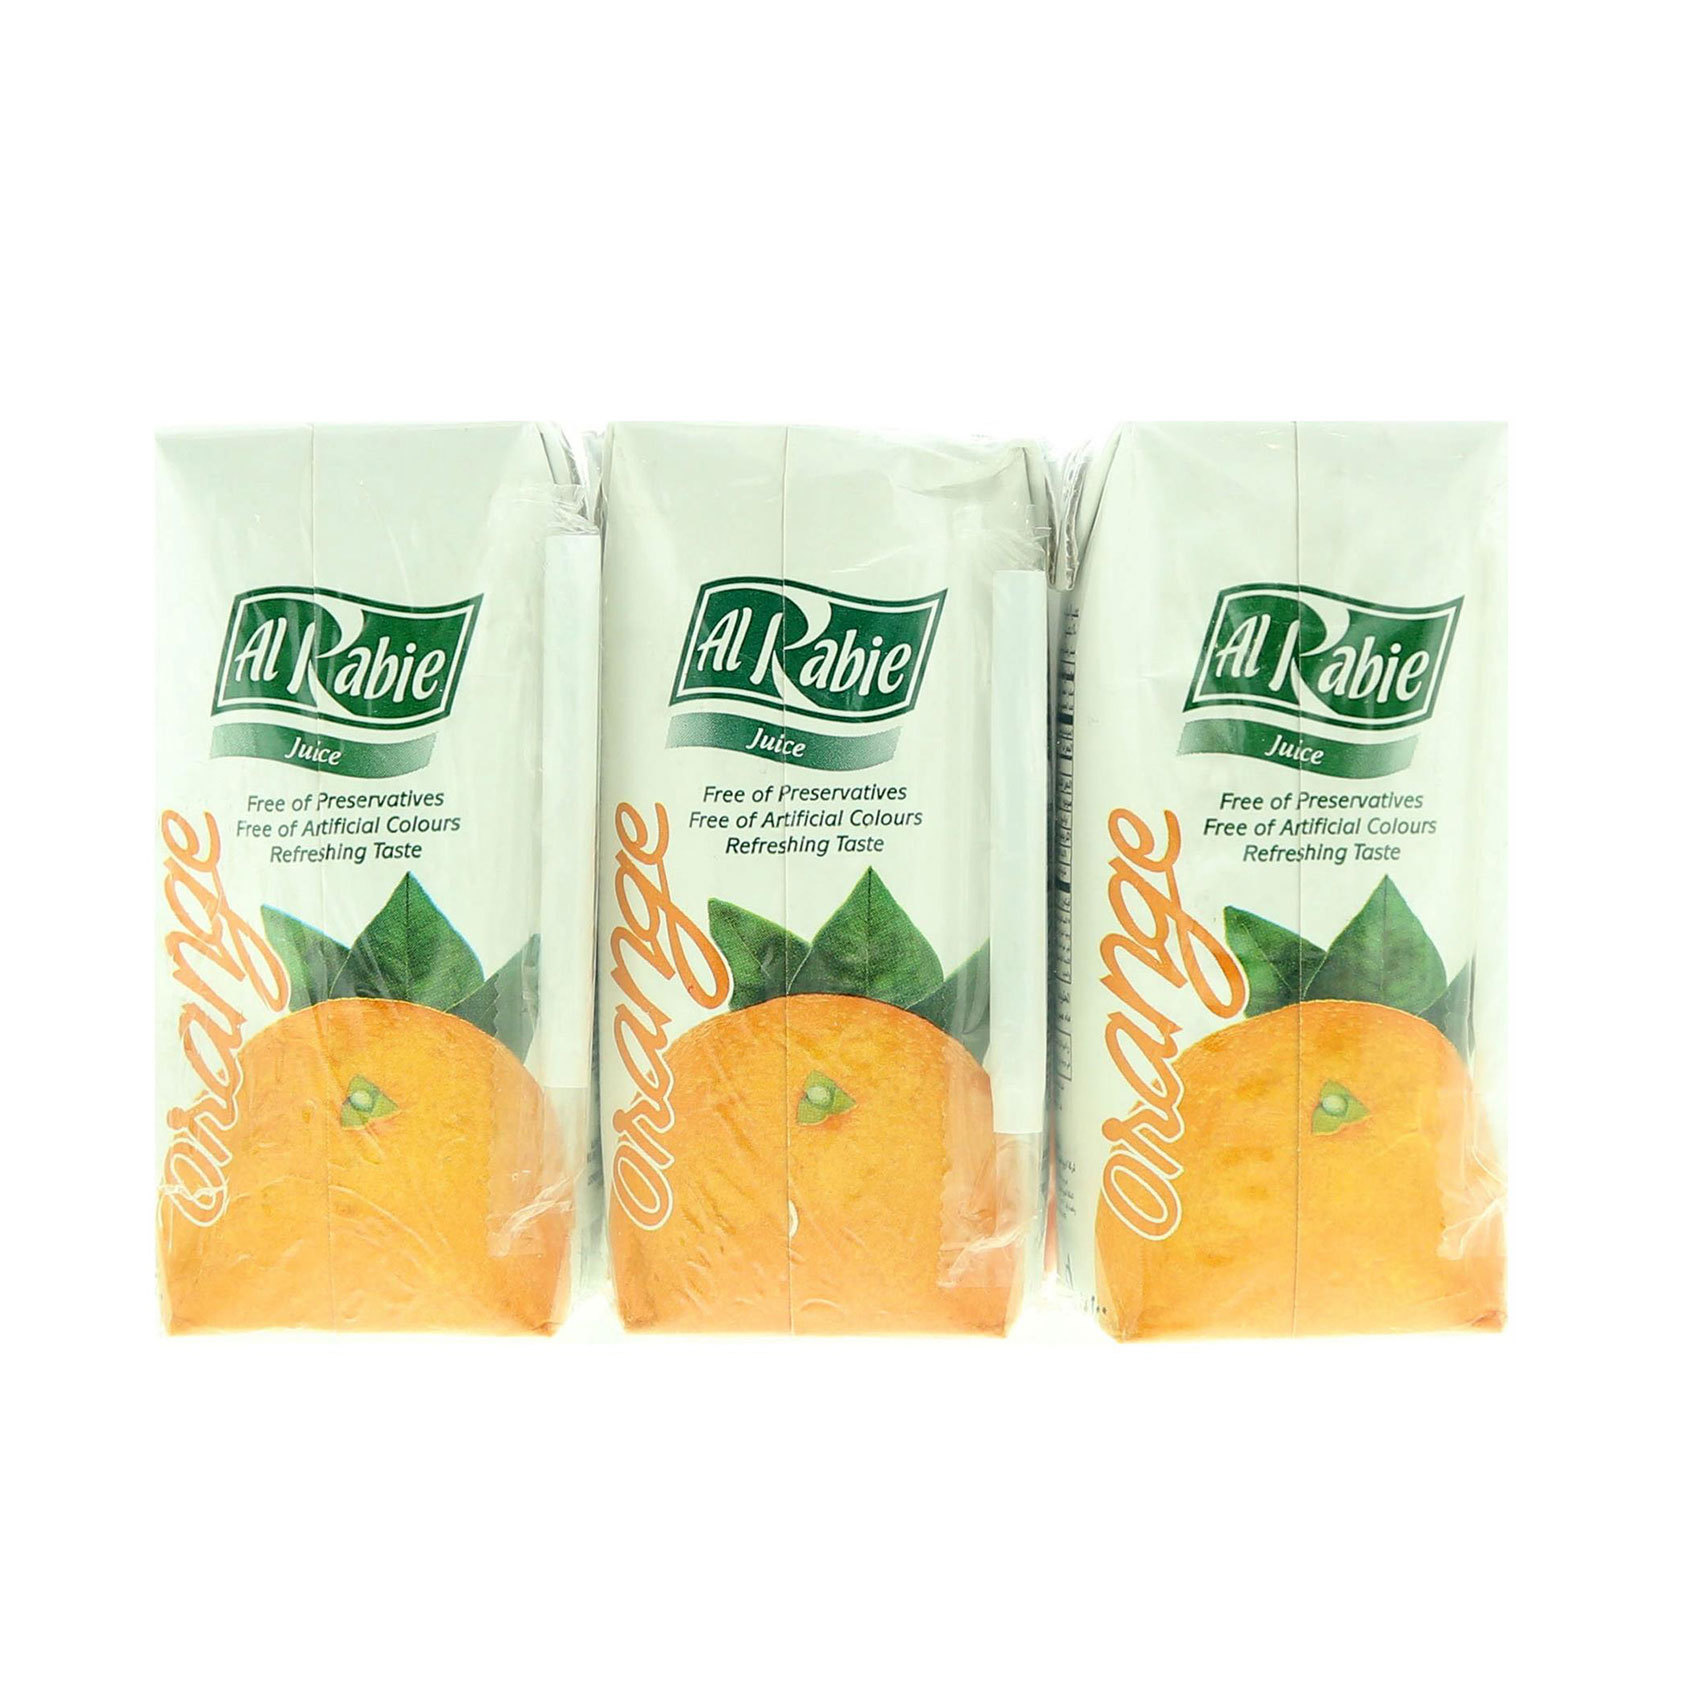 AL RABIE ORANGE JUICE 200ML X 9